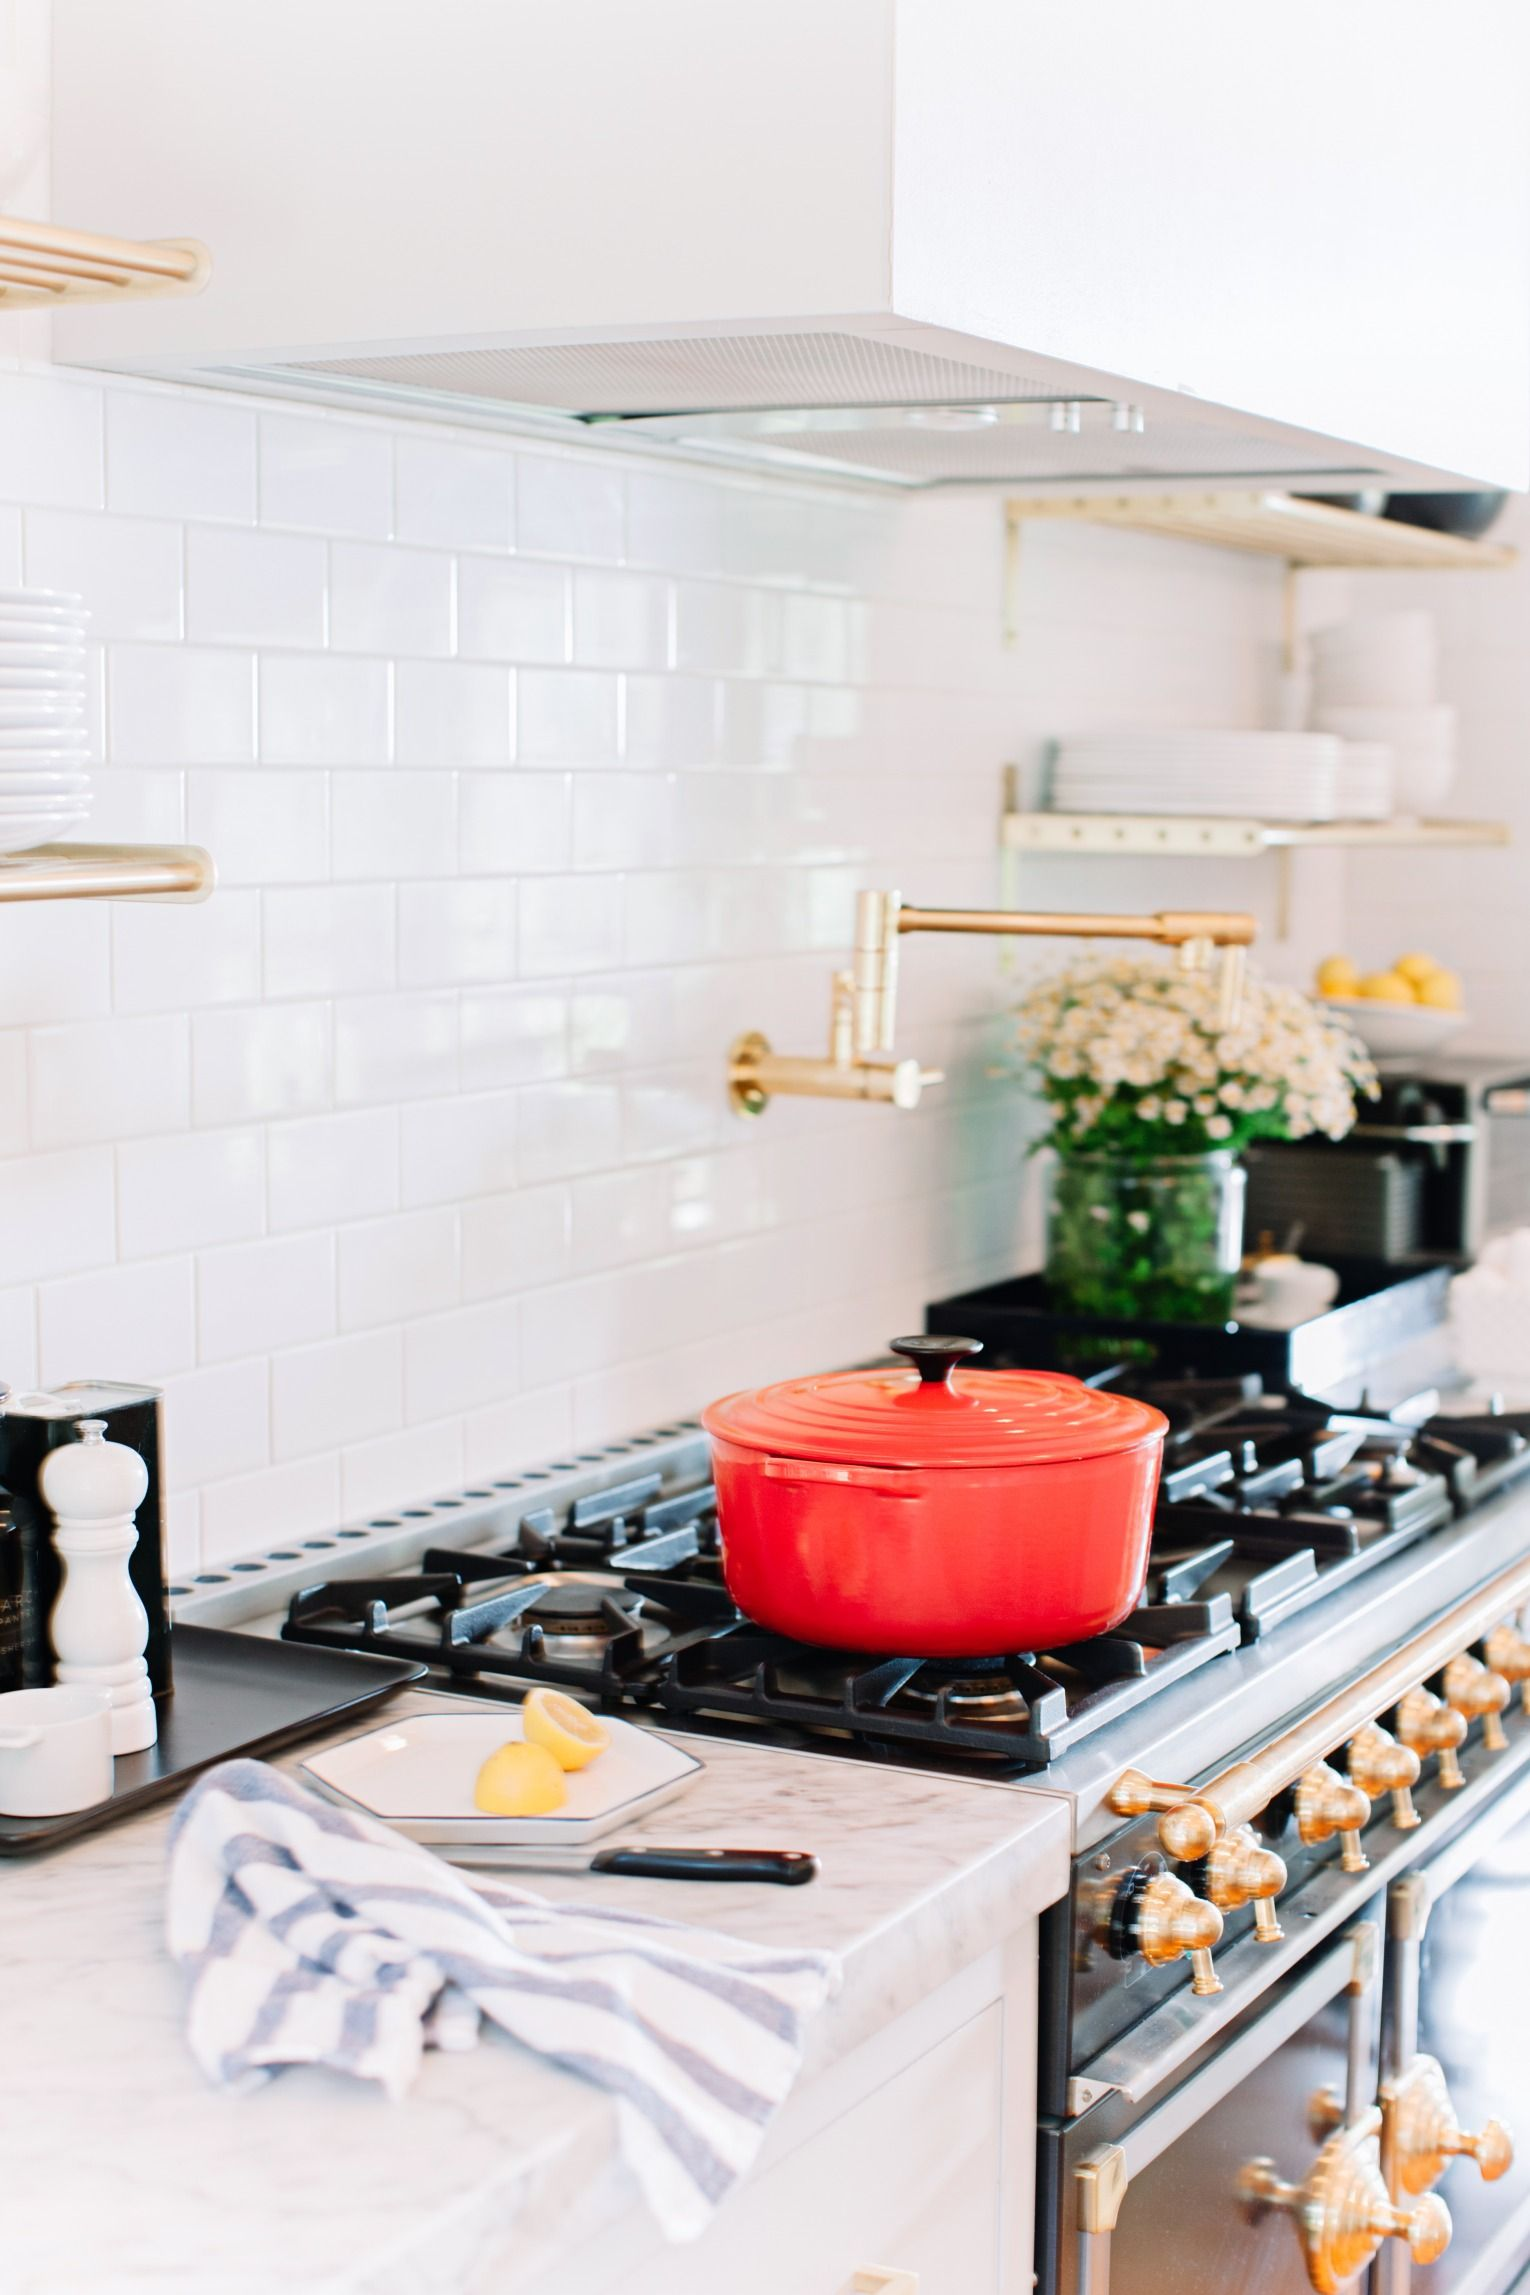 Gorgeous Gleaming Br Kitchen Accents And Red Le Creuset